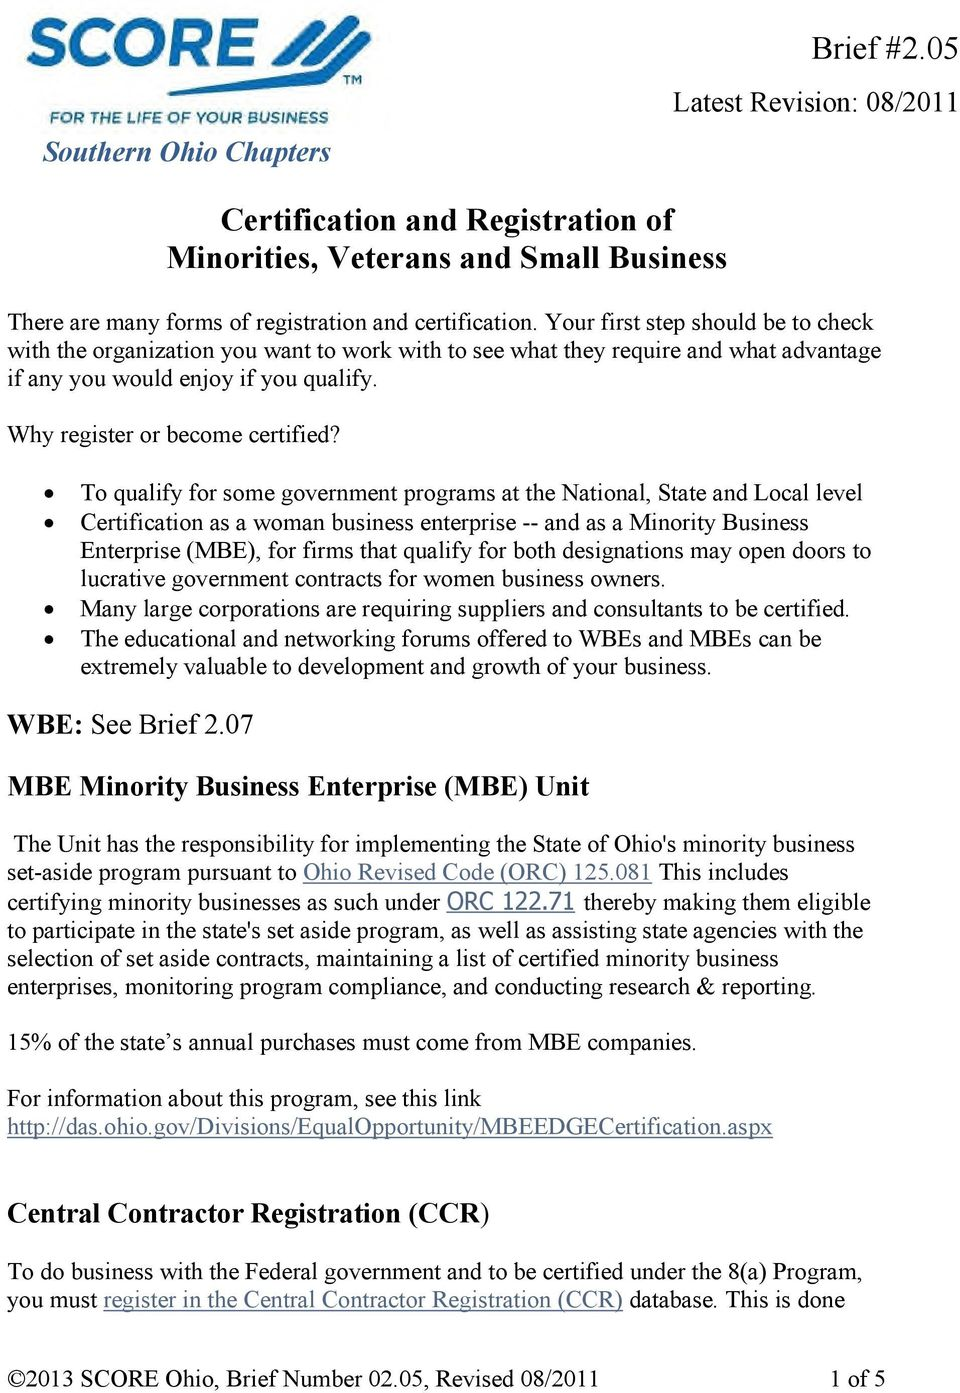 To qualify for some government programs at the National, State and Local level Certification as a woman business enterprise -- and as a Minority Business Enterprise (MBE), for firms that qualify for